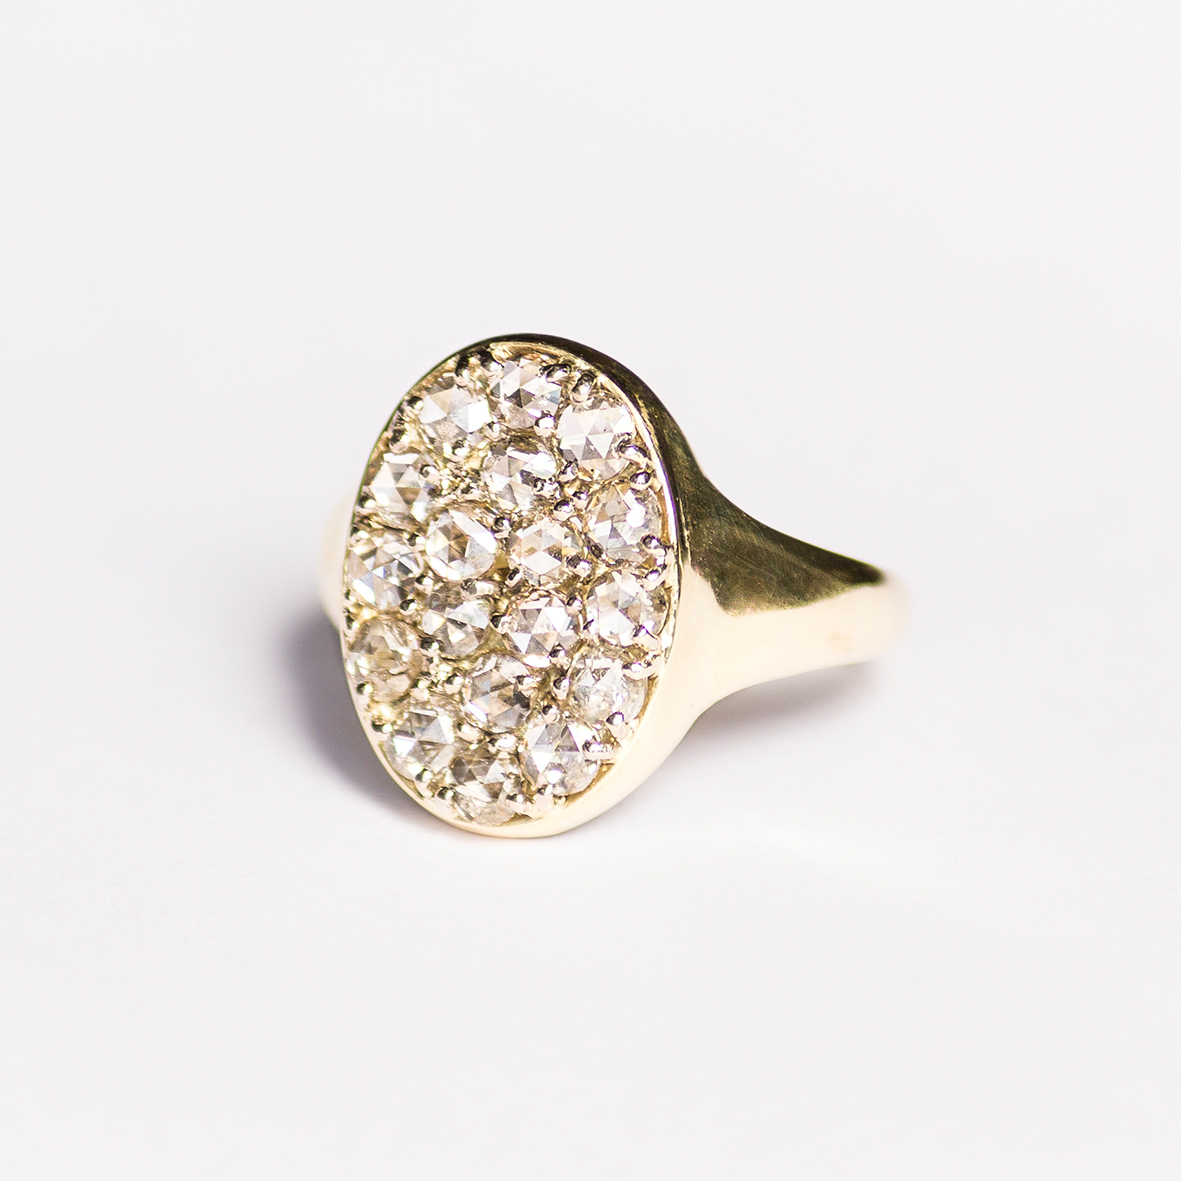 2. OONA_lotus_principal_signet diamond ring-1